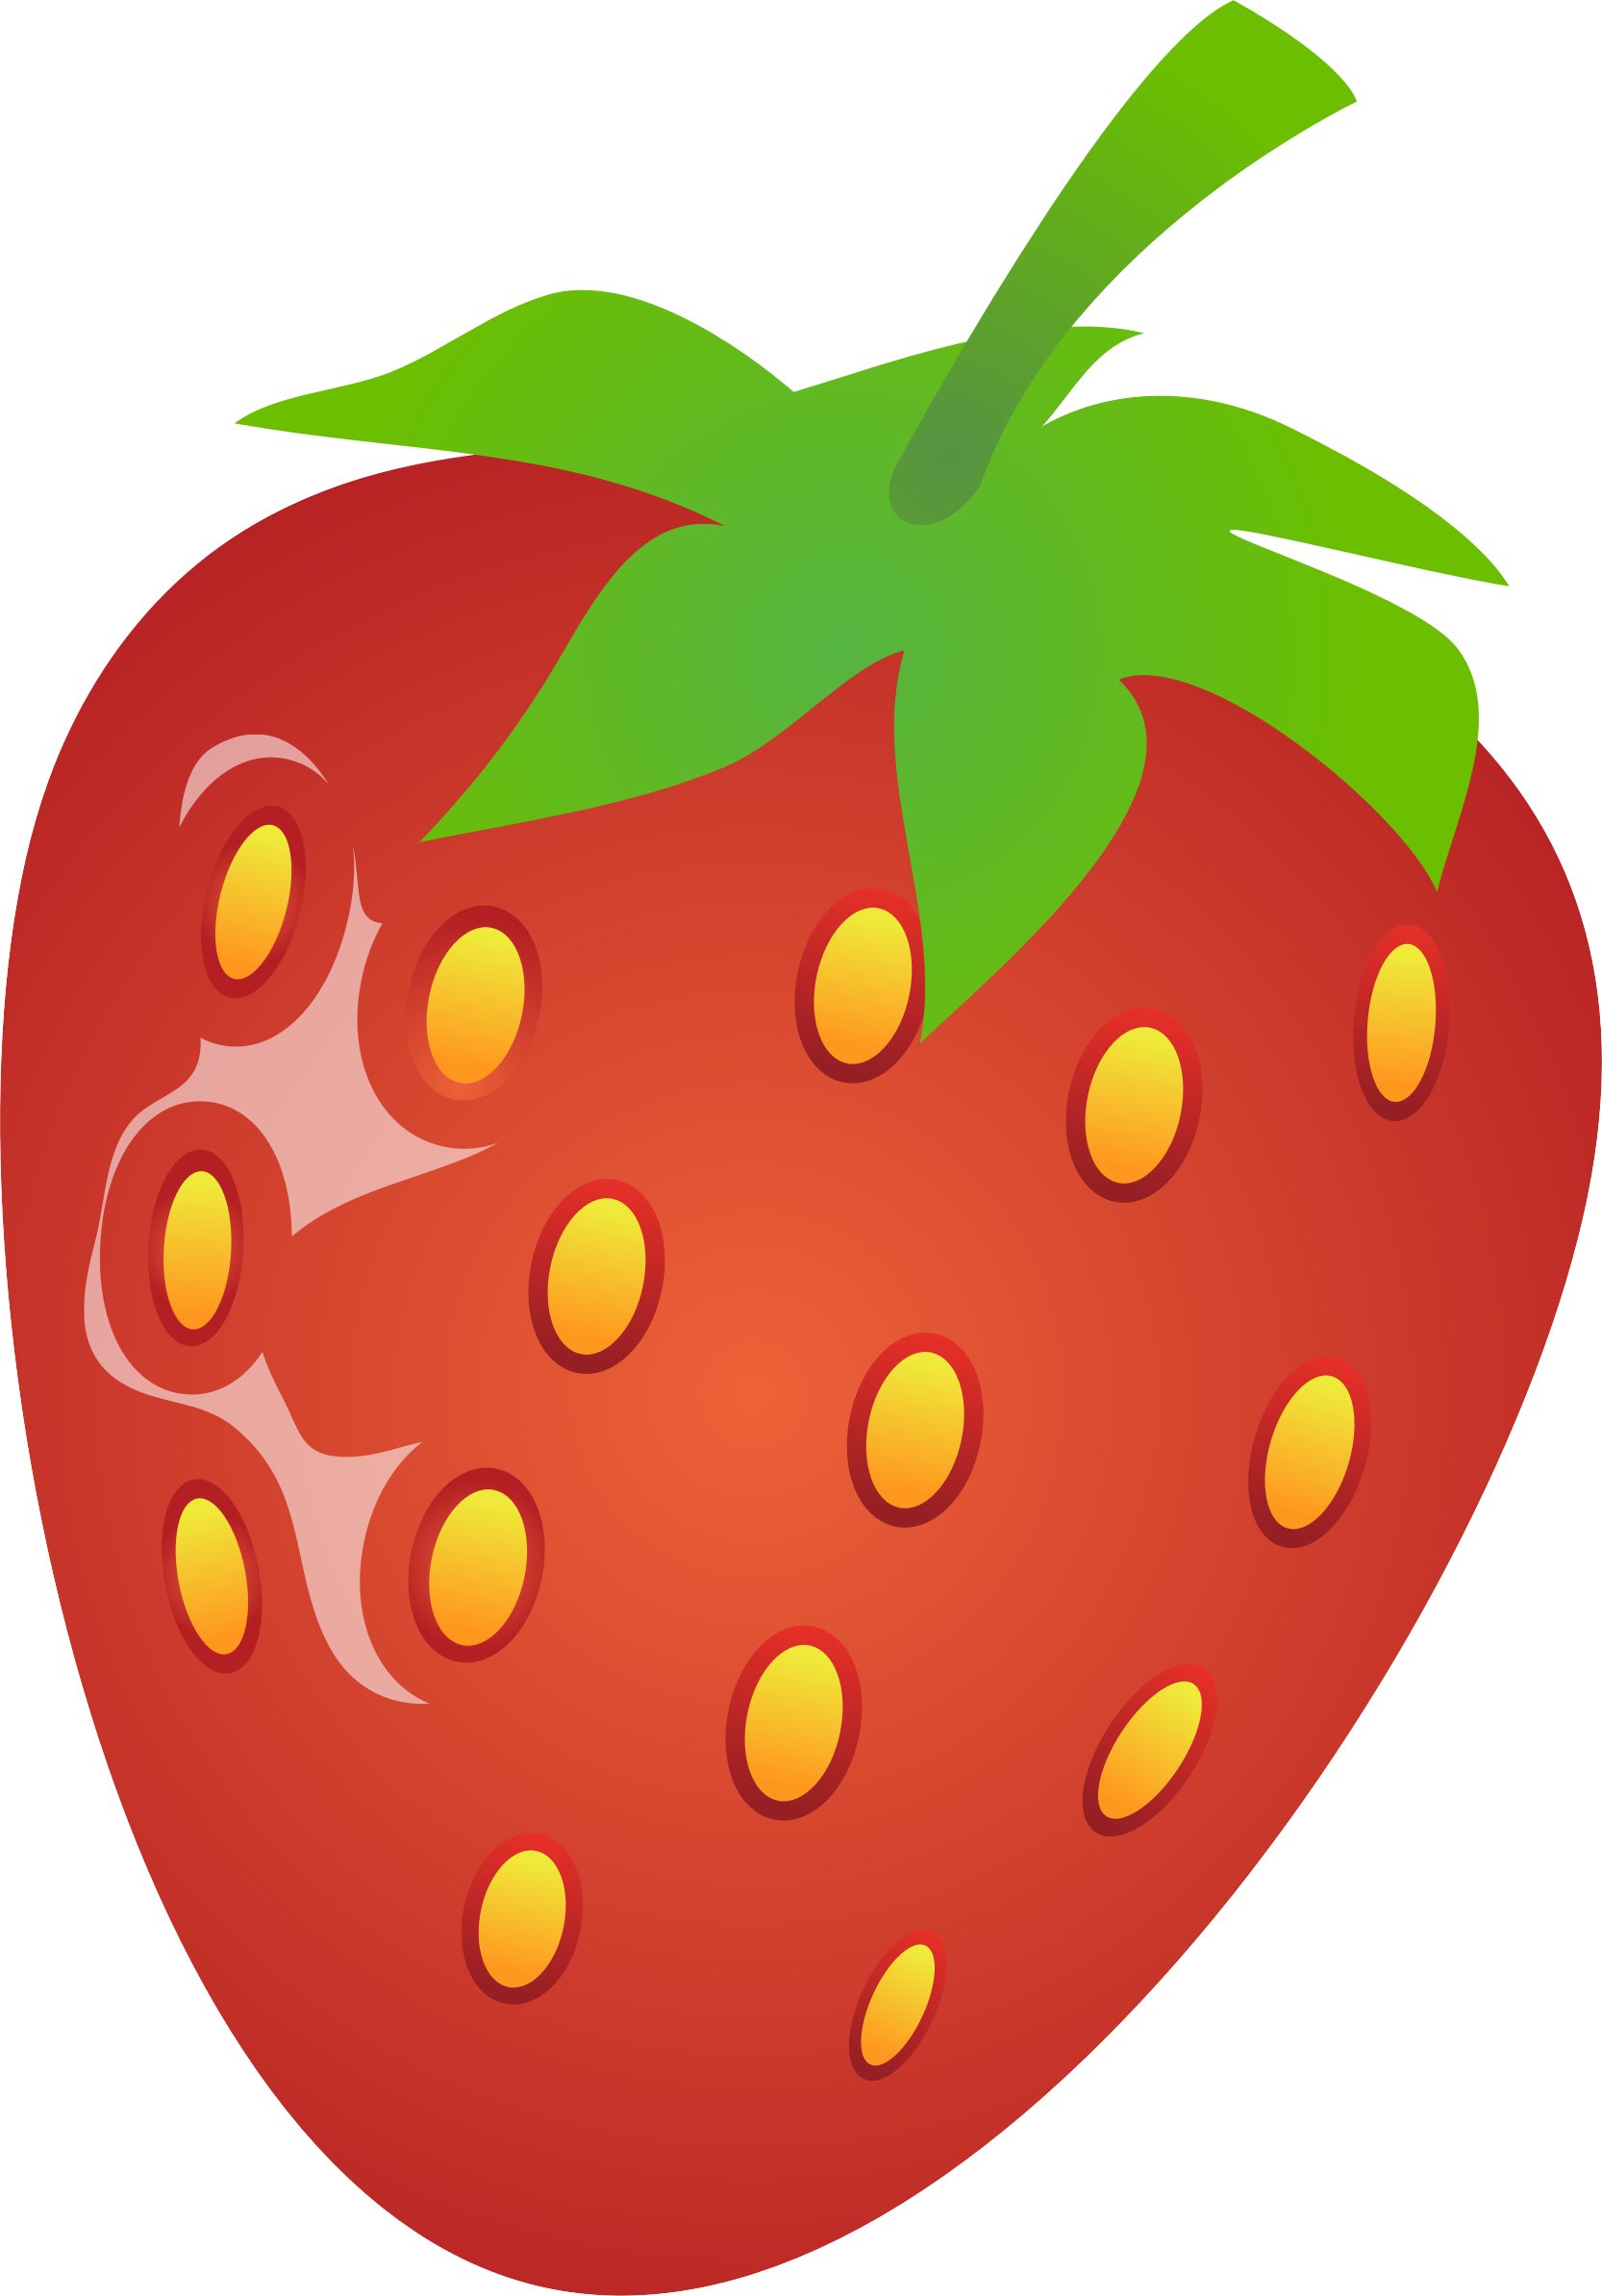 Strawberries clipart orange. Strawberry big image png